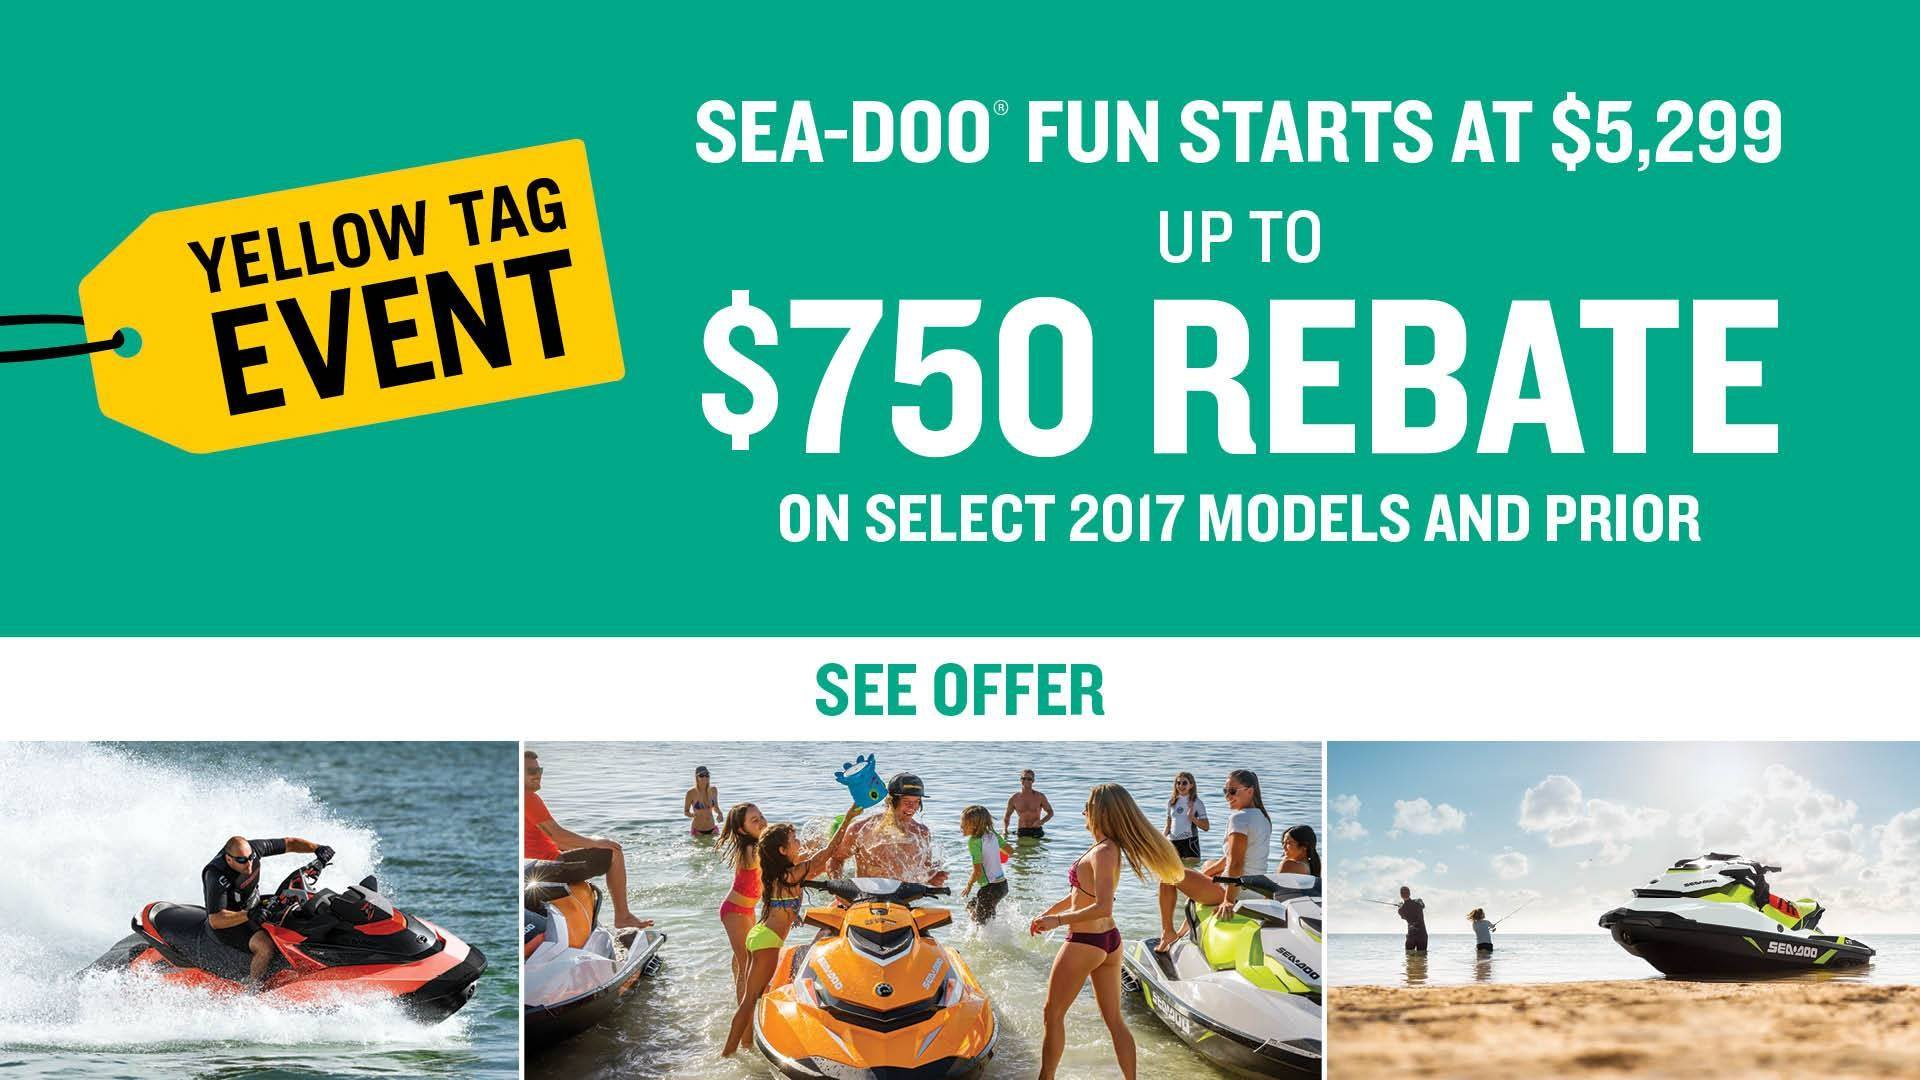 Sea-Doo - Yellow Tag Event